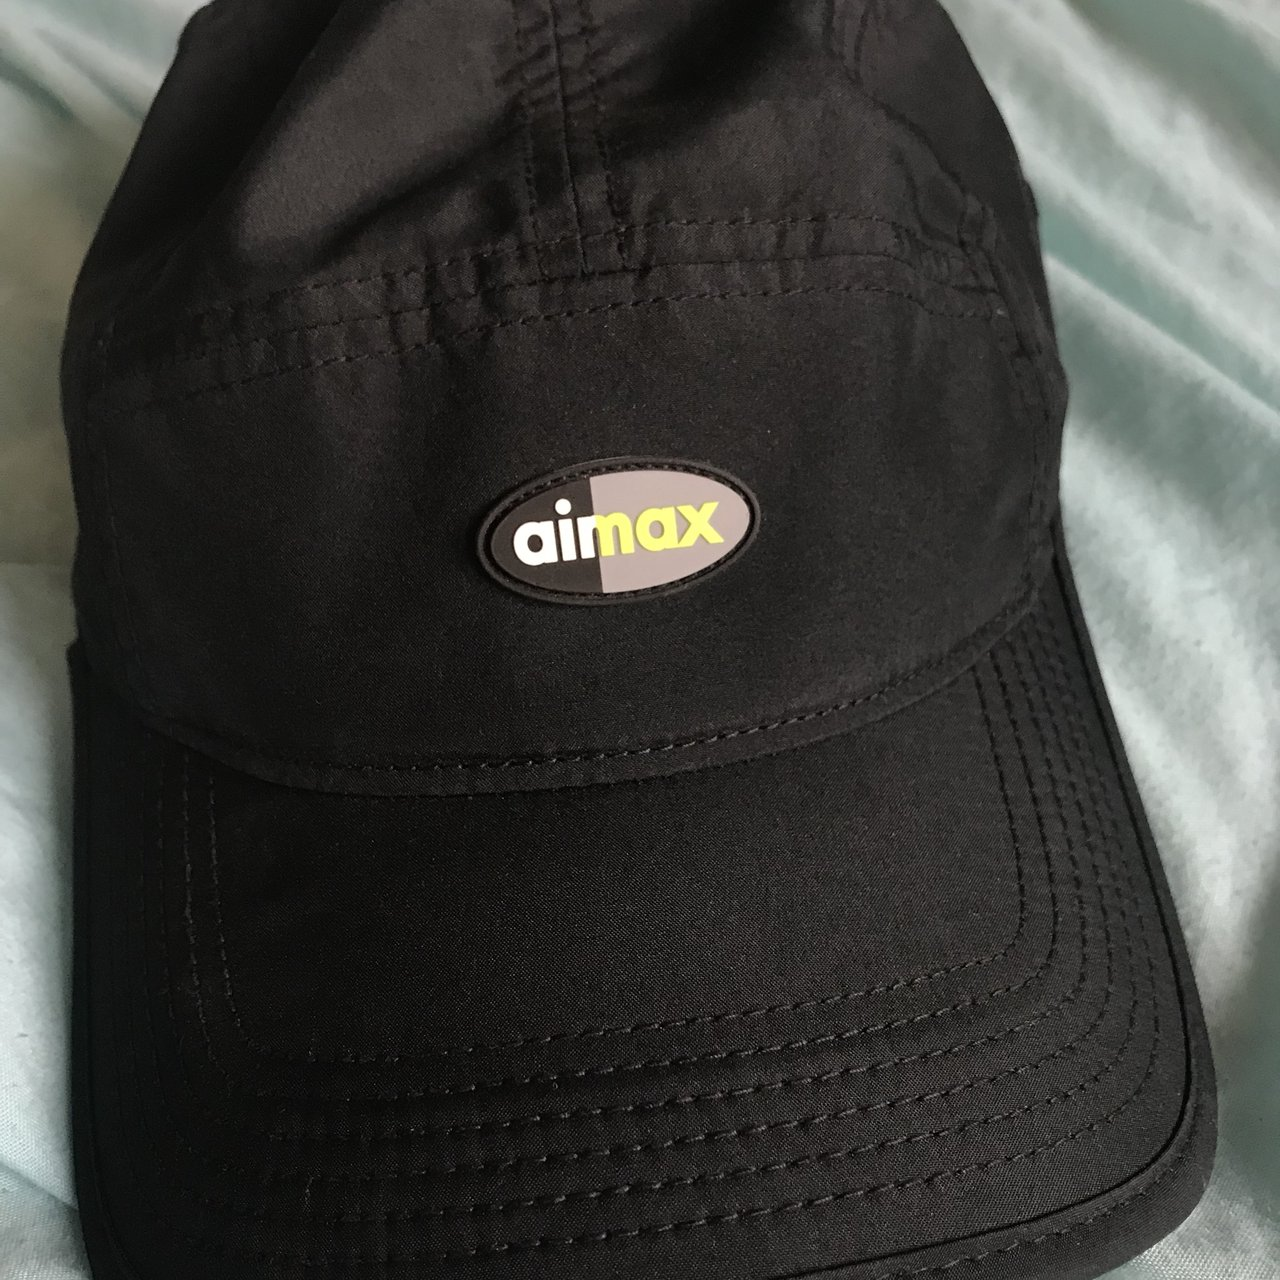 Nike AirMax cap in black. Adjustable strap and made from - Depop 8ec06071979